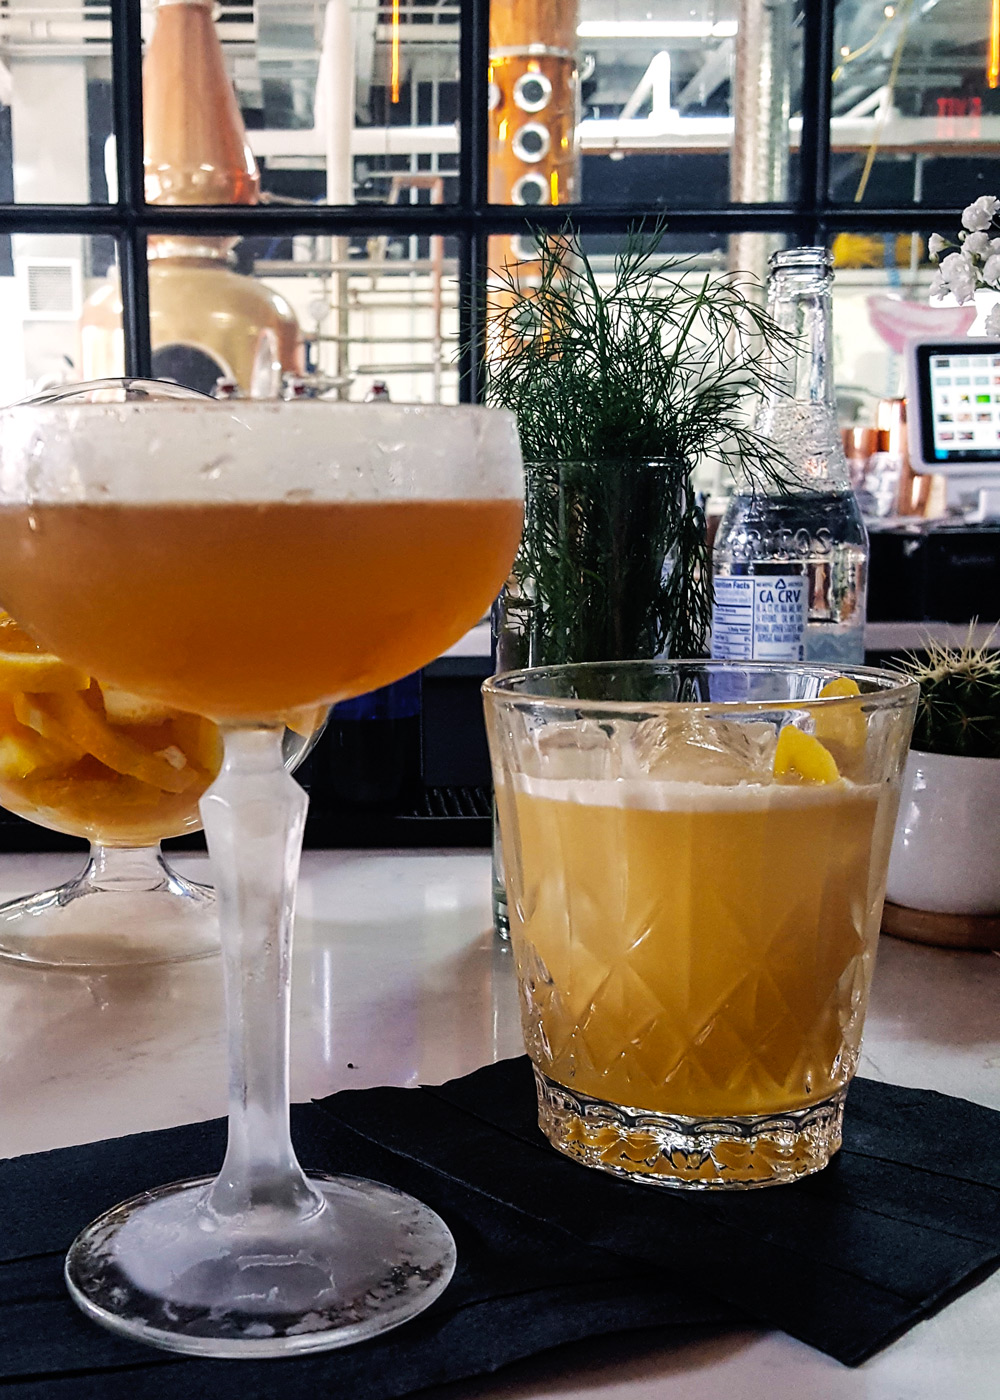 Located in the seashore city's growing downtown, Asbury Park Distilling Co. is quickly gaining praise for both its handcrafted spirits and artisanal cocktails, all made in house with locally sourced ingredients. | A Review from FeastInThyme.com